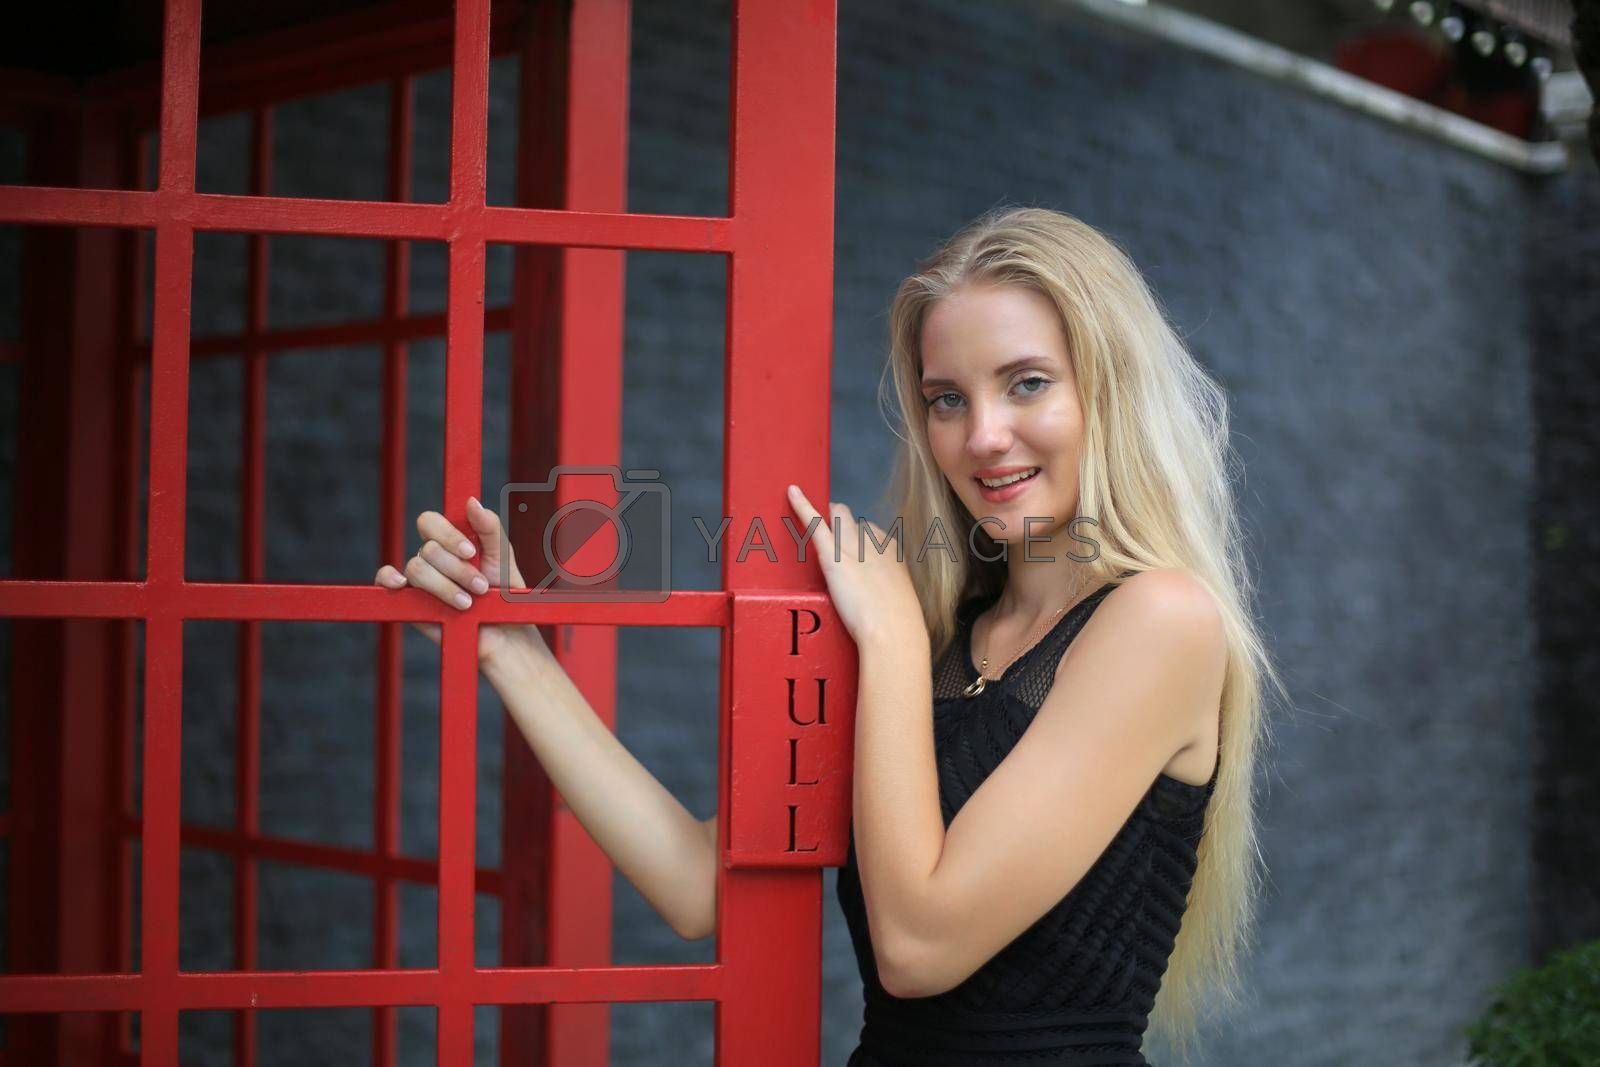 Portrait of Beautiful blonde hair girl on black dress standing in red phone booth against black wall as portrait fashion pose outdoor.